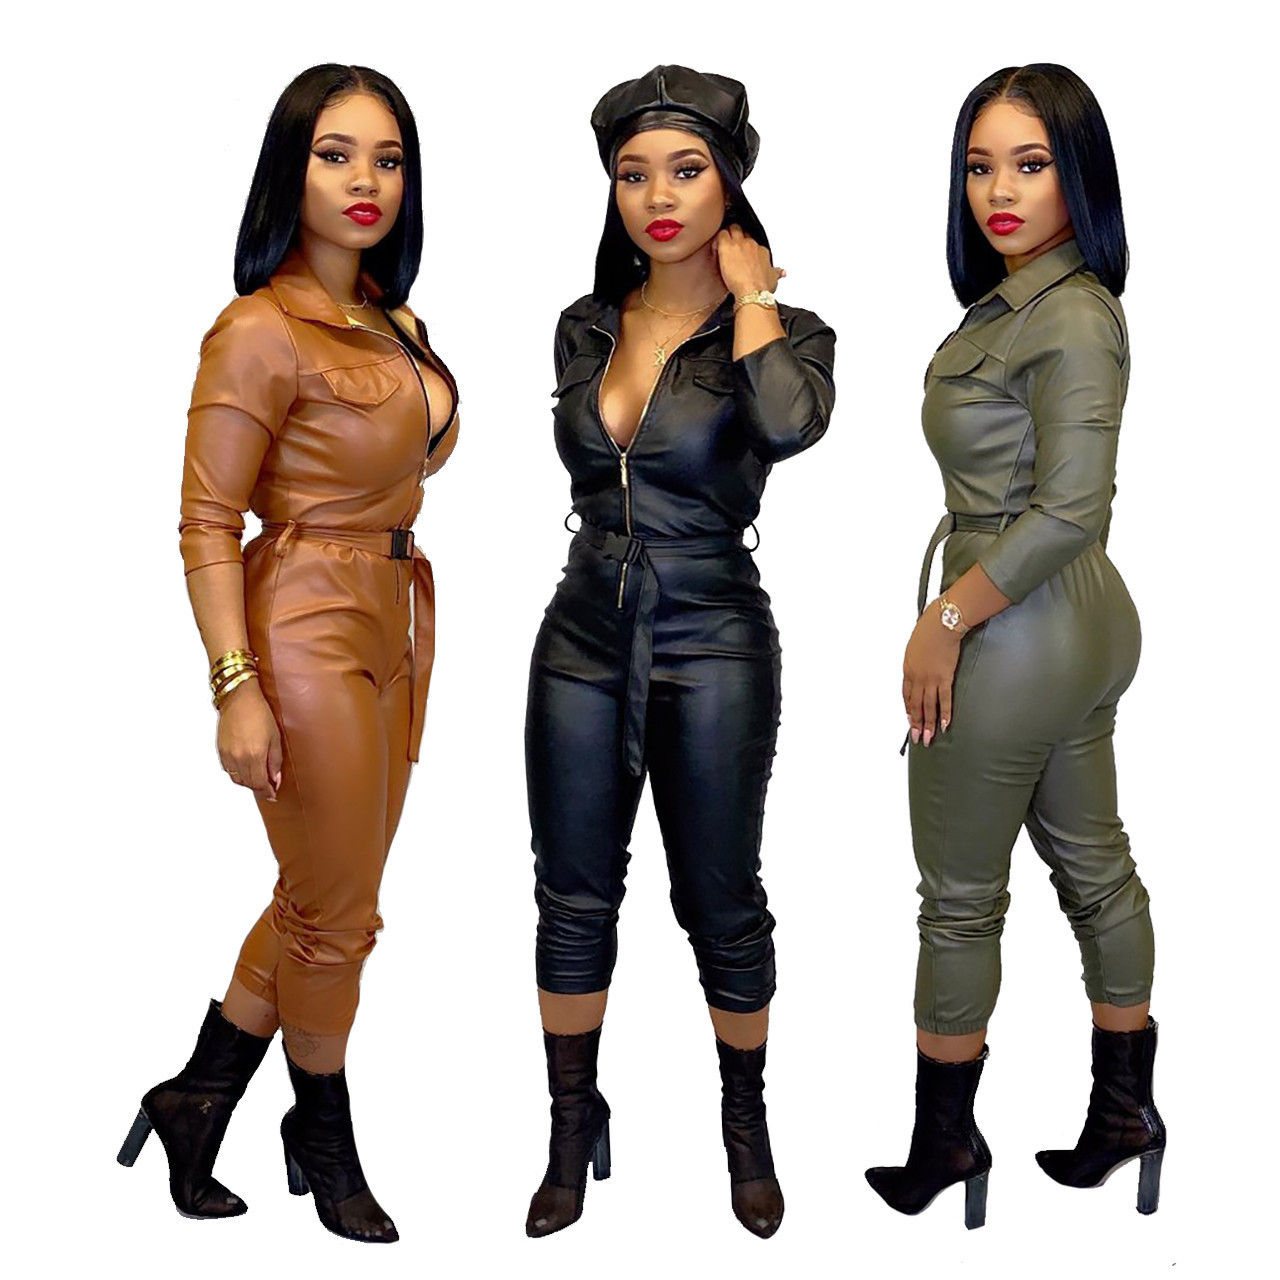 2020 Europe and the United States autumn new women's solid color fashion casual long section with jumpsuit (including belt)